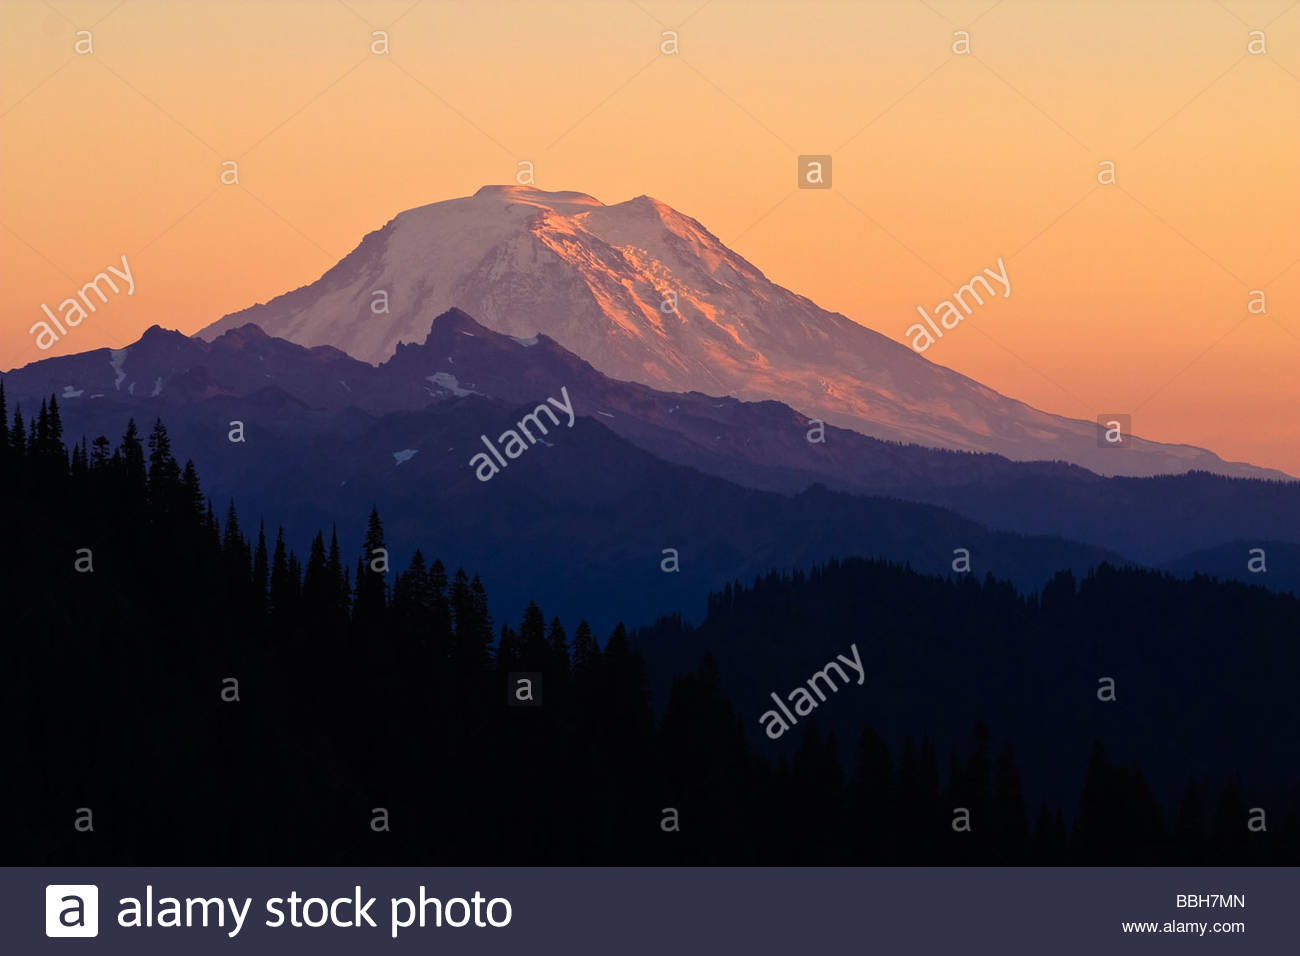 Mount Adams, Washington's second-tallest mountain, towers above neighboring peaks in this view from Chinook - Stock Image